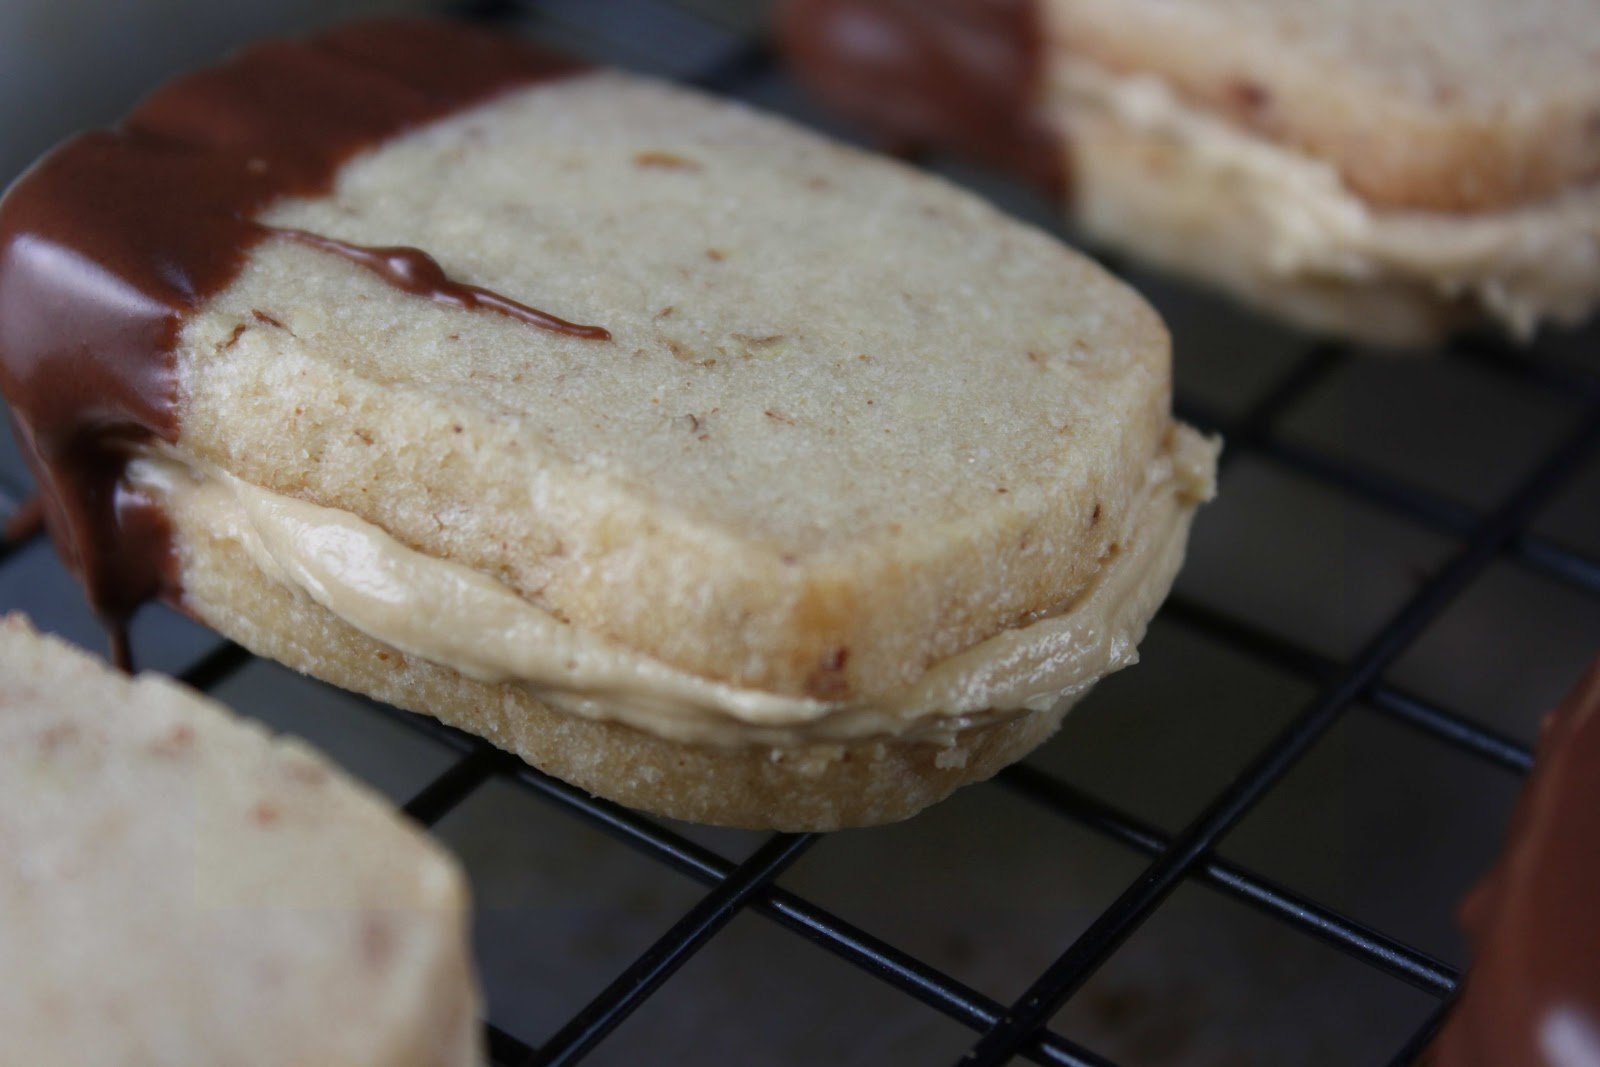 ... shortbread best shortbread irish shortbread maple pecan shortbread